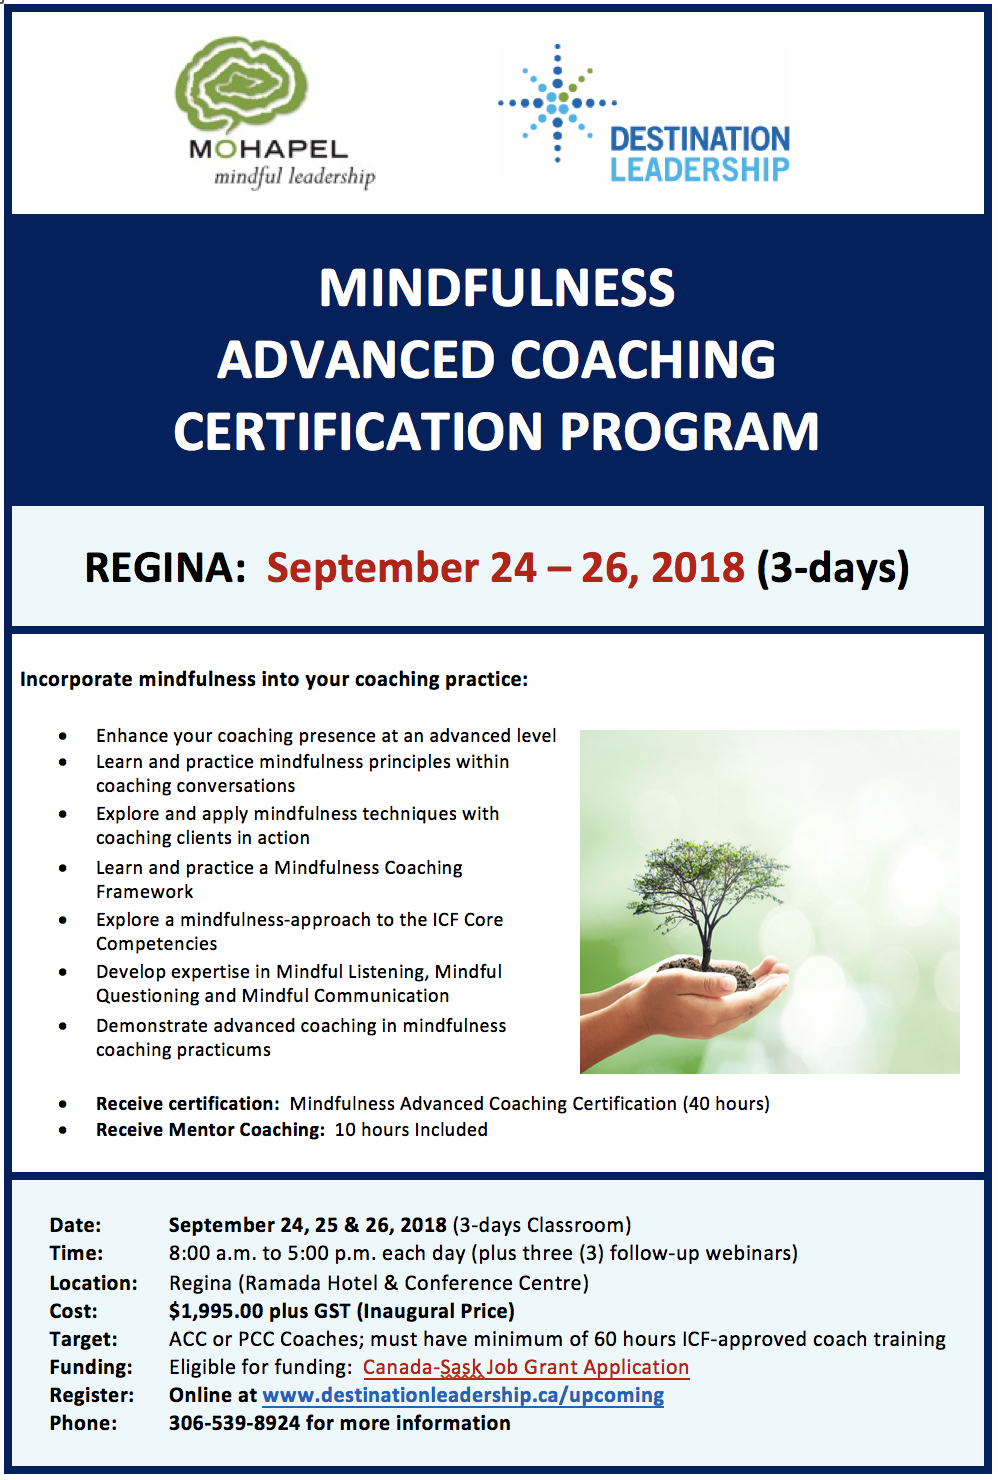 Register for Mindfulness Advanced Coaching Certification Training